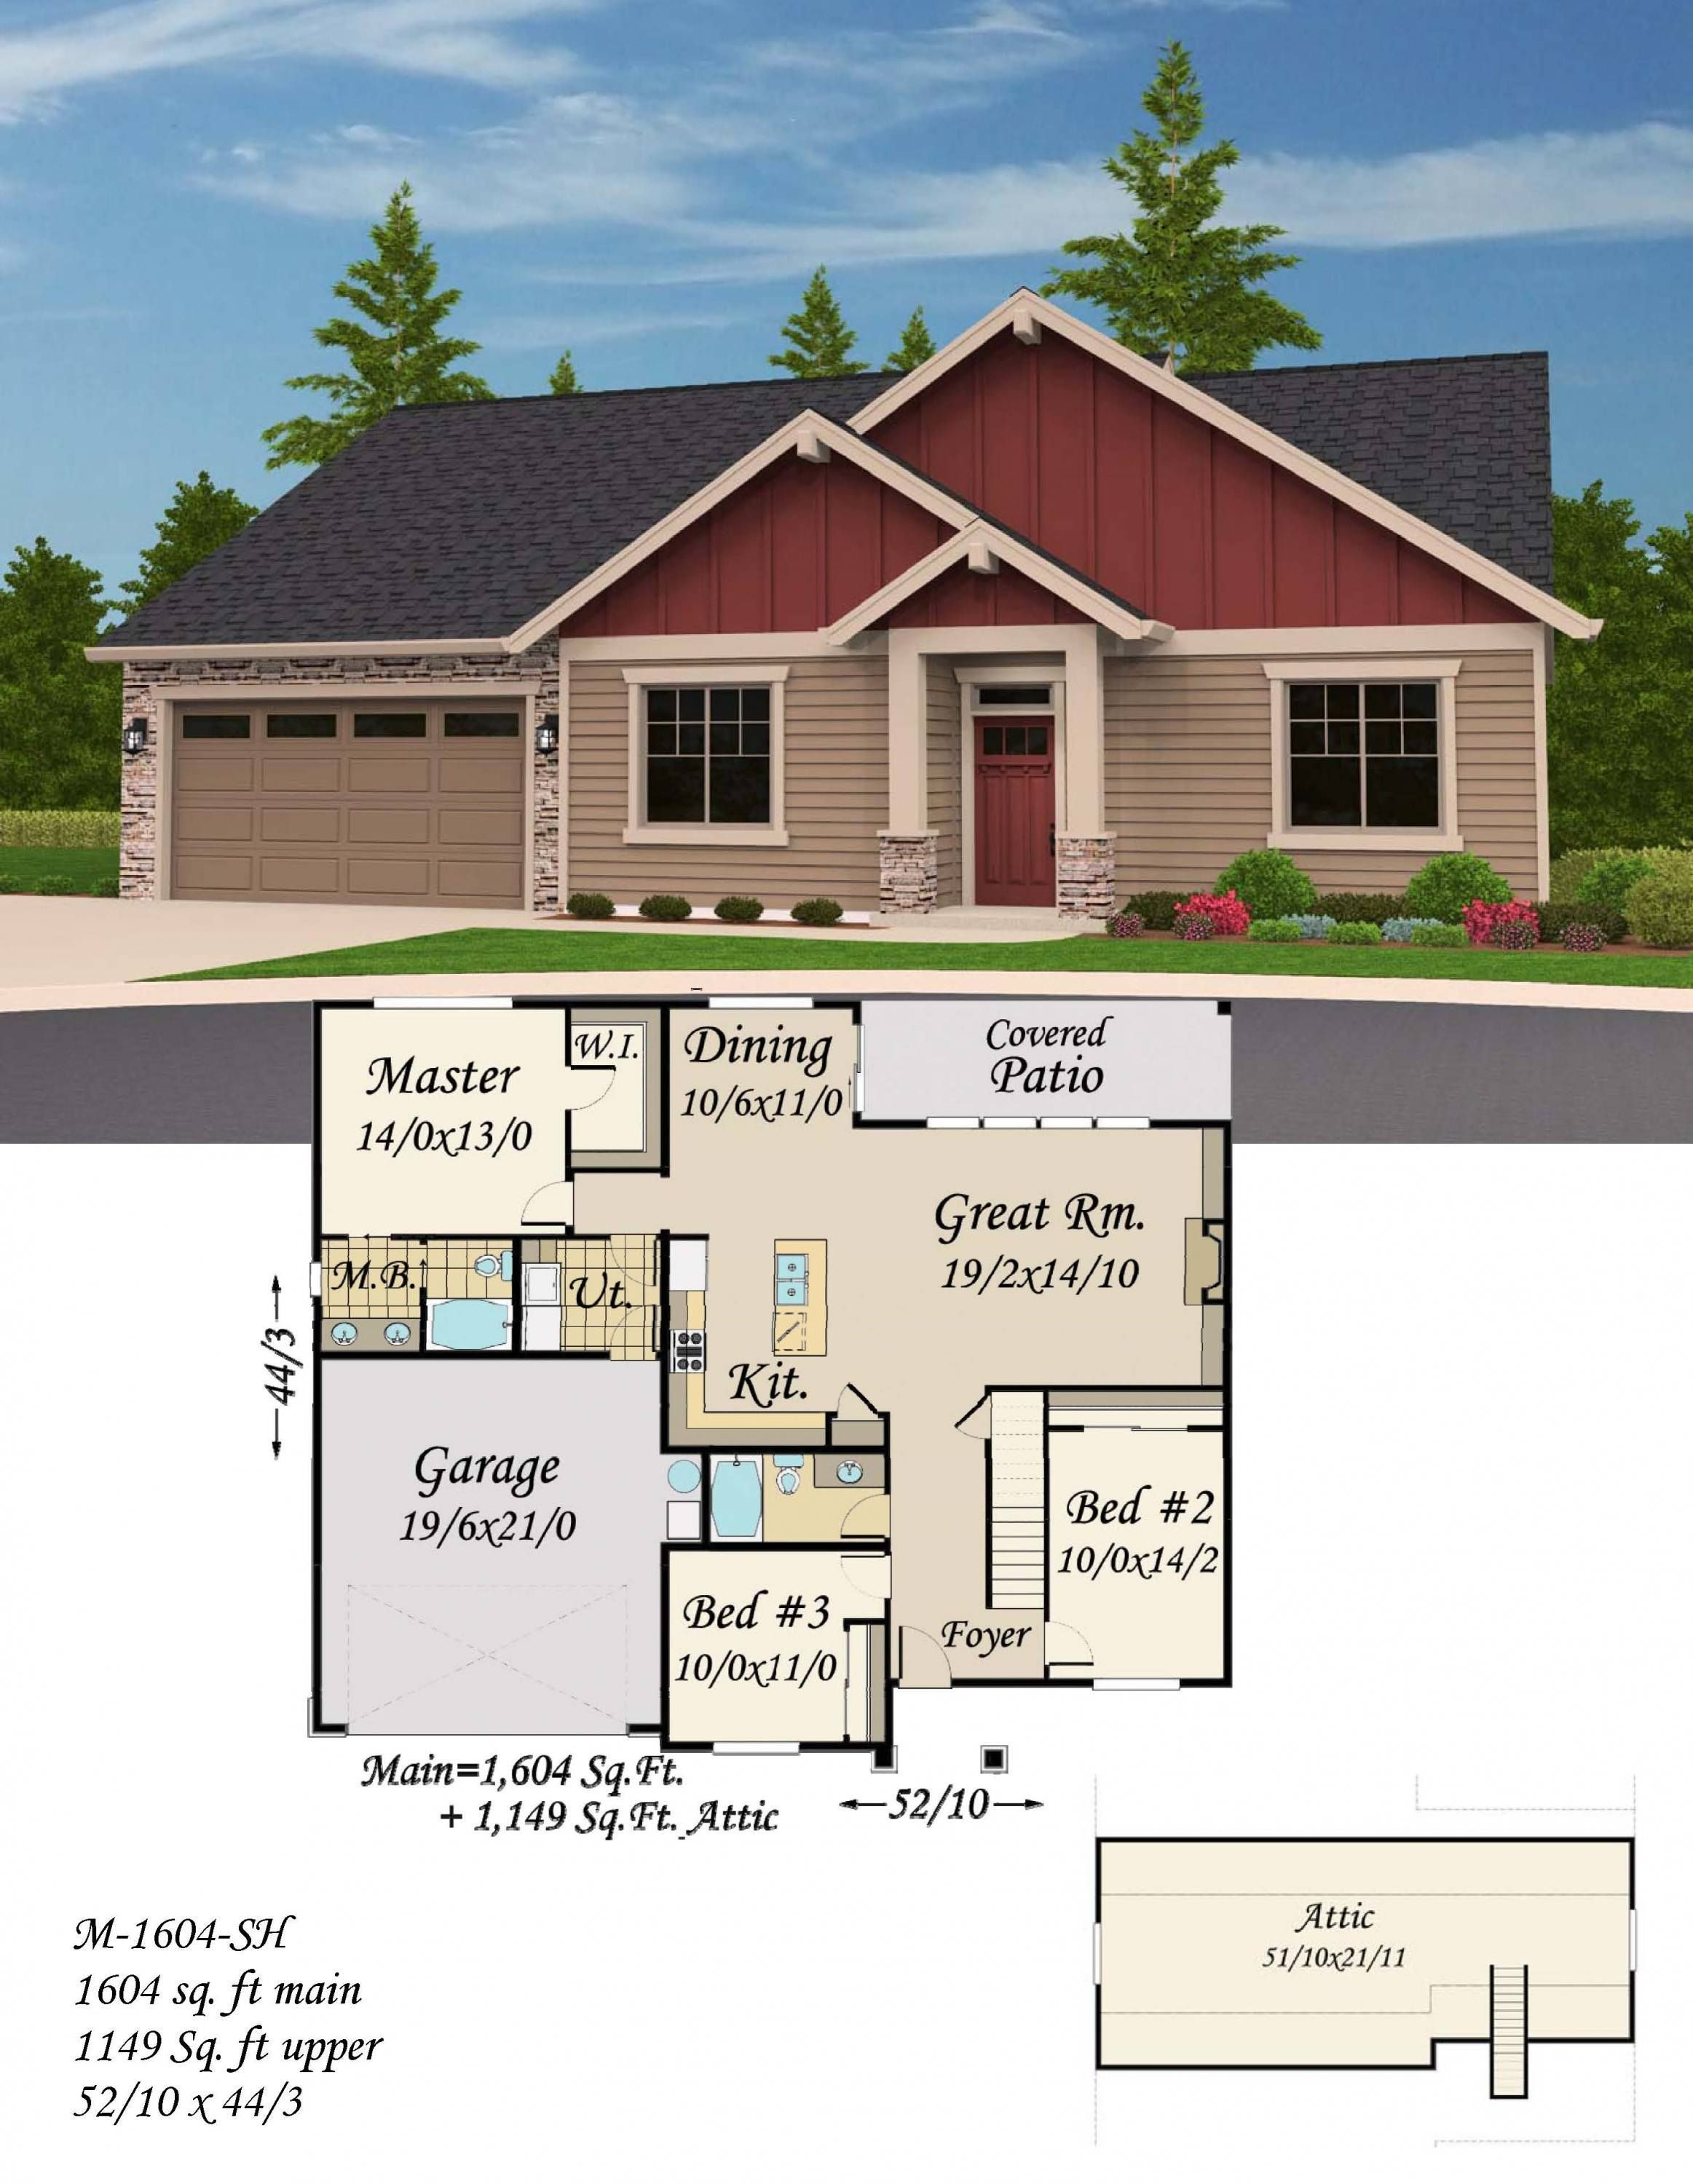 Craftsman House Plan With Huge Bonus Room Perfect For Hobbies Kids House Plans Mansion Cottage House Plans Barn Style House Plans